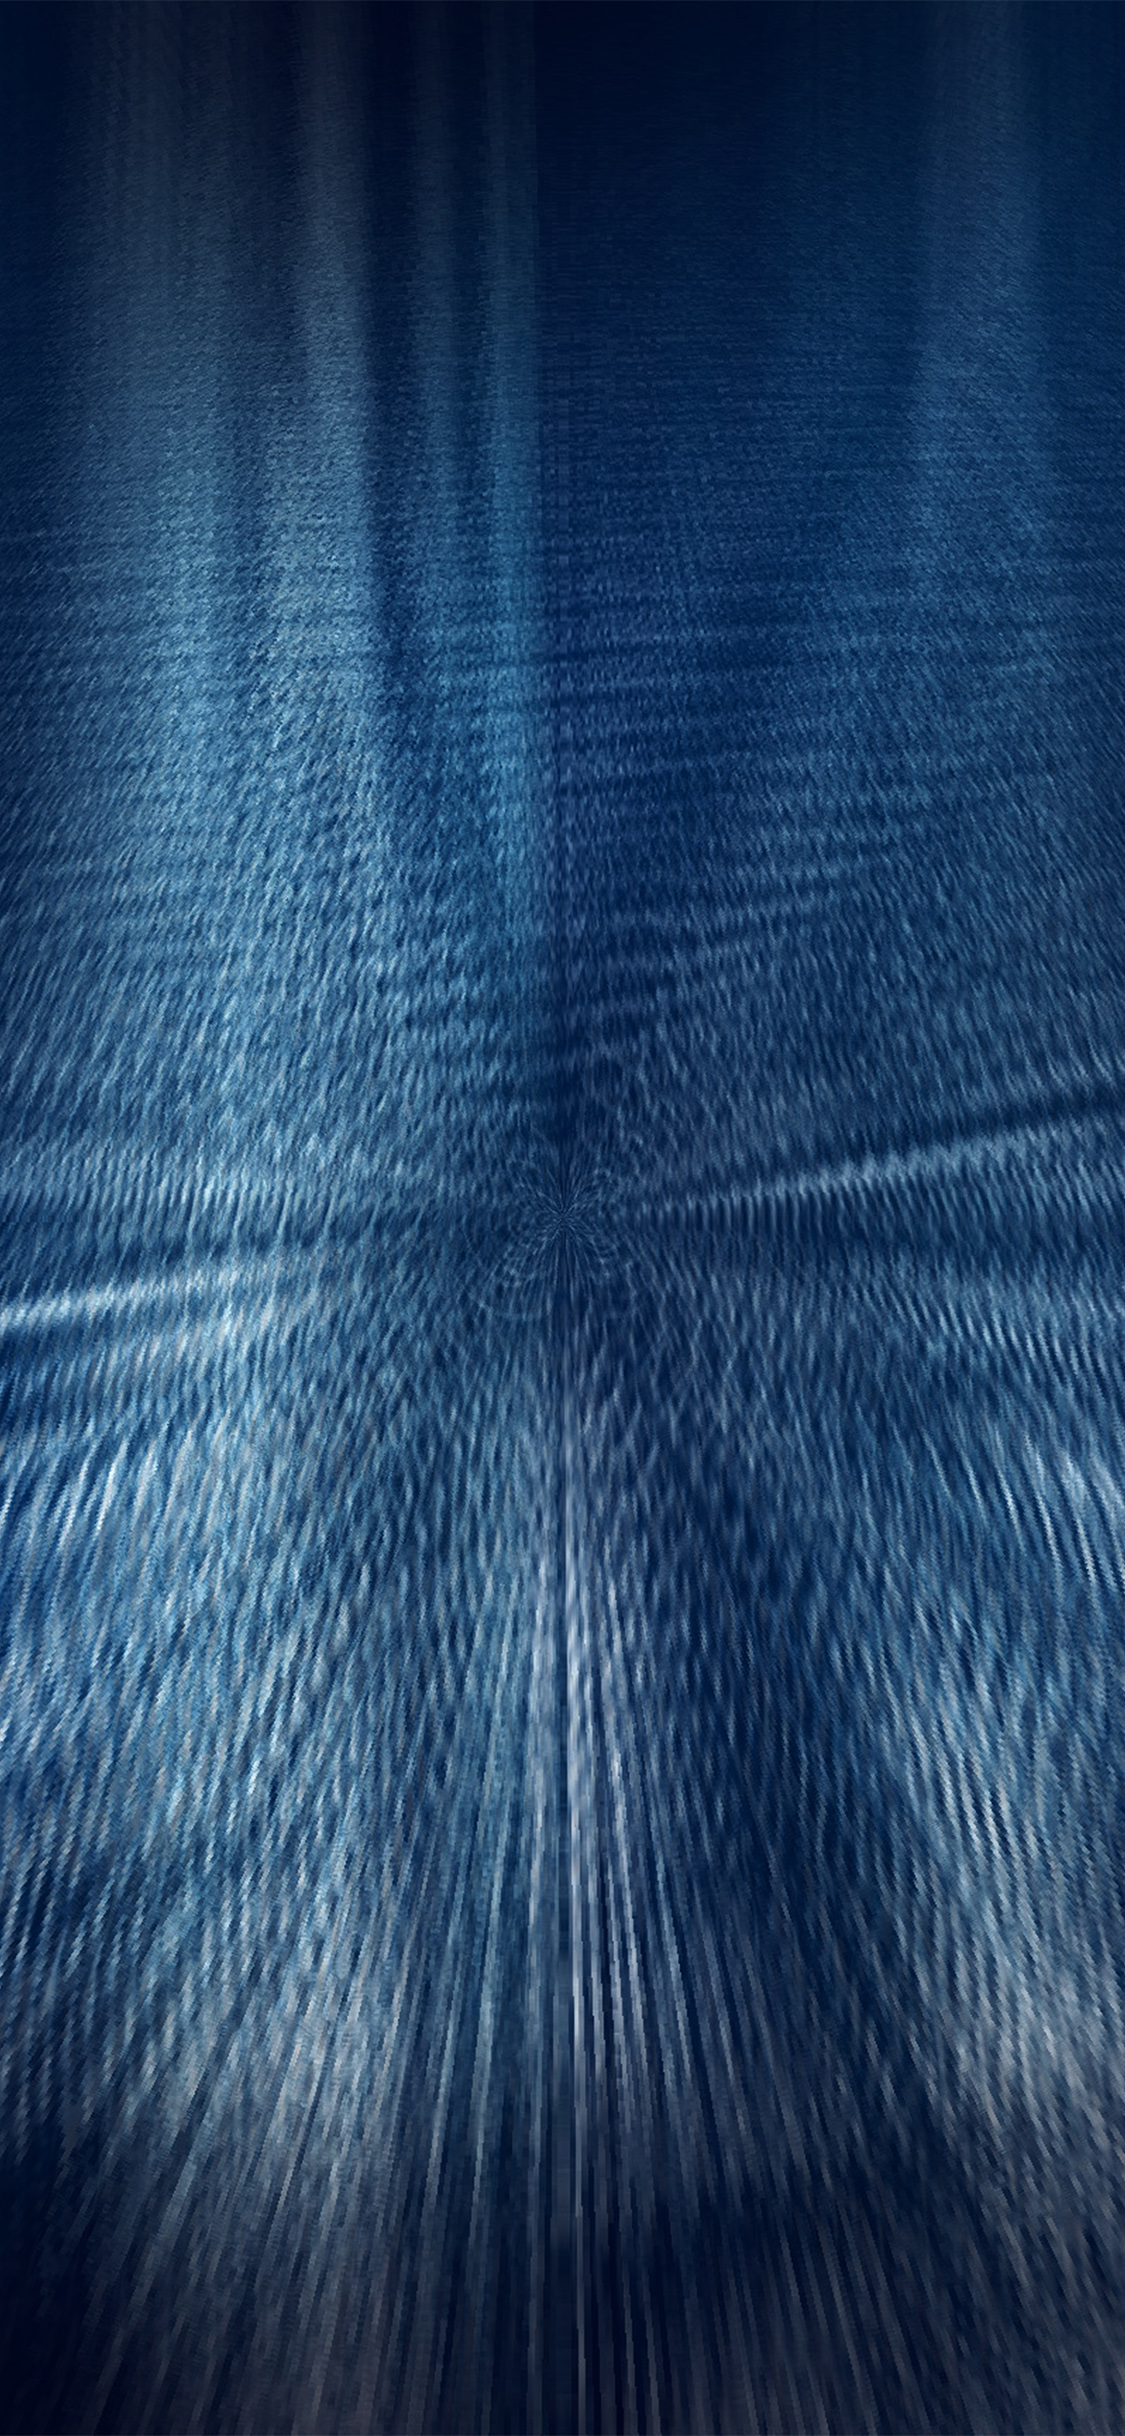 iPhoneXpapers.com-Apple-iPhone-wallpaper-vp27-cool-blue-wave-pattern